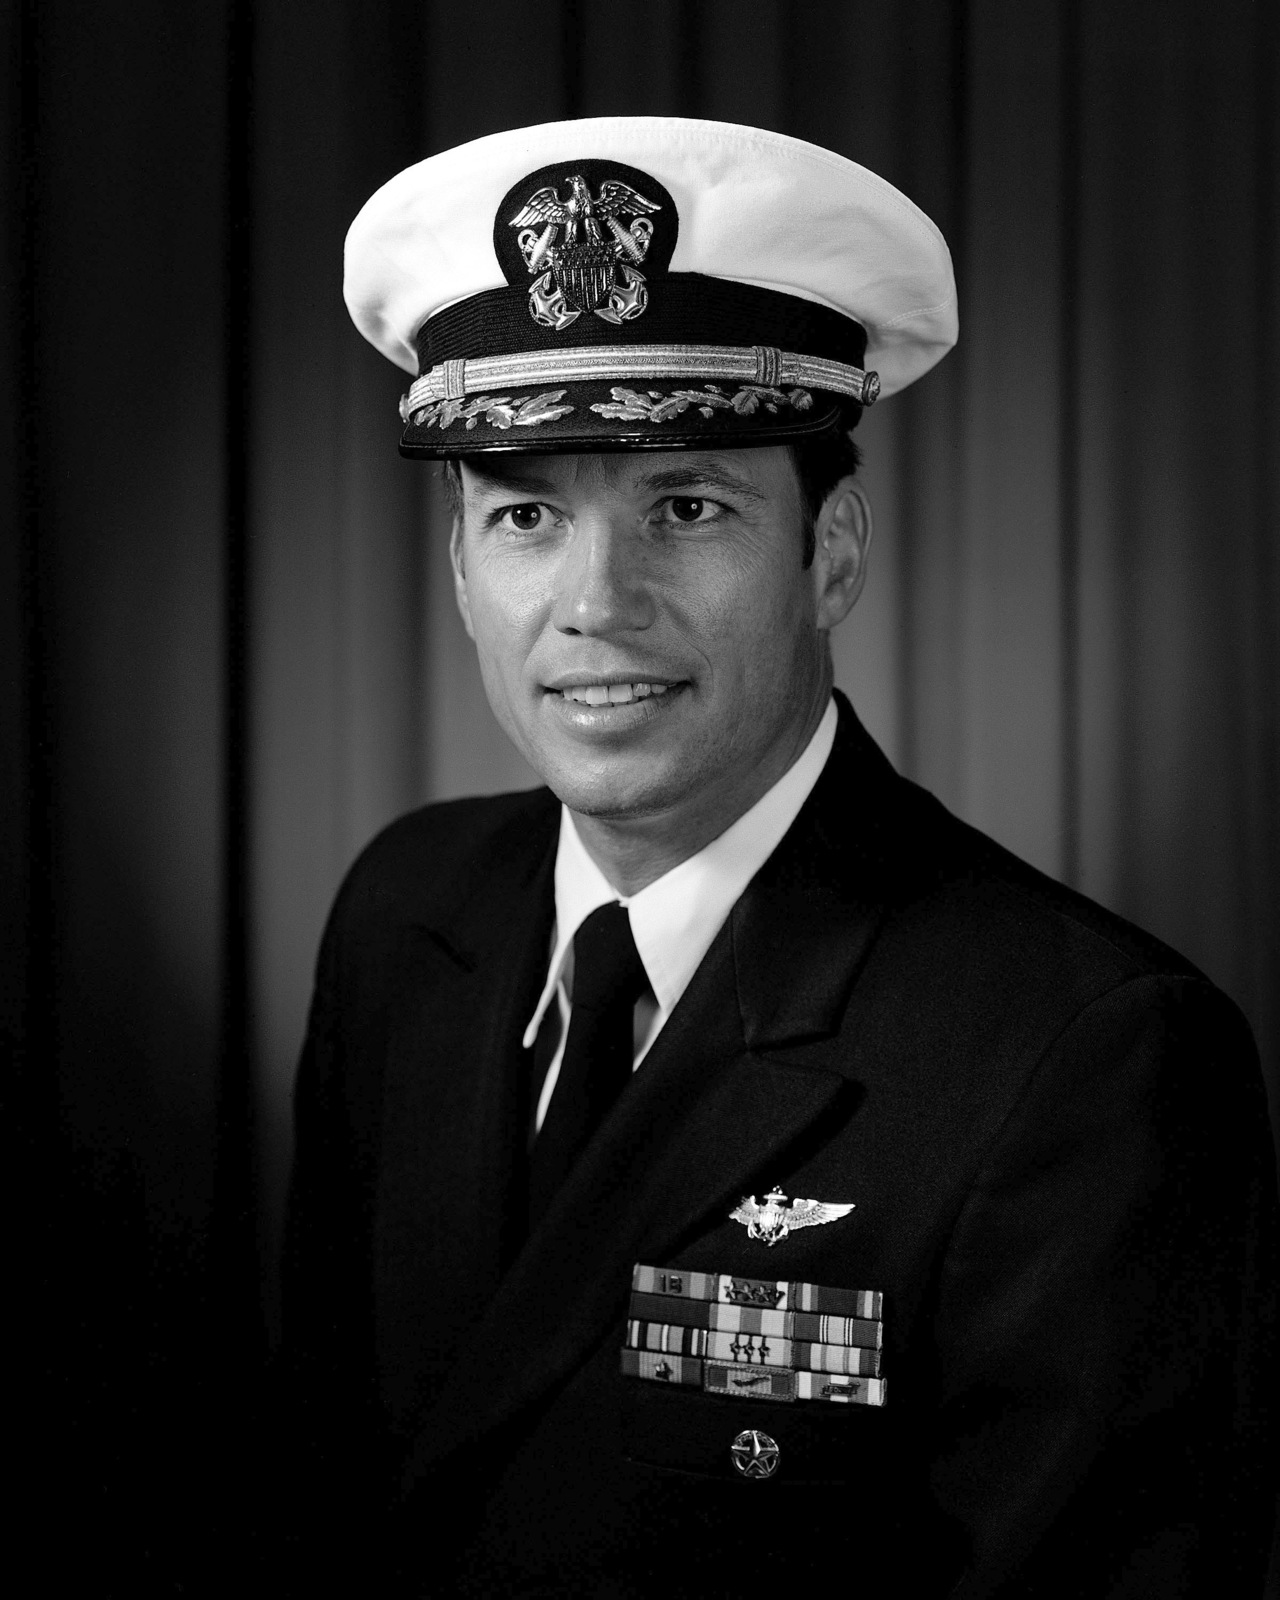 Commander James I. Maslowski, USN (covered)